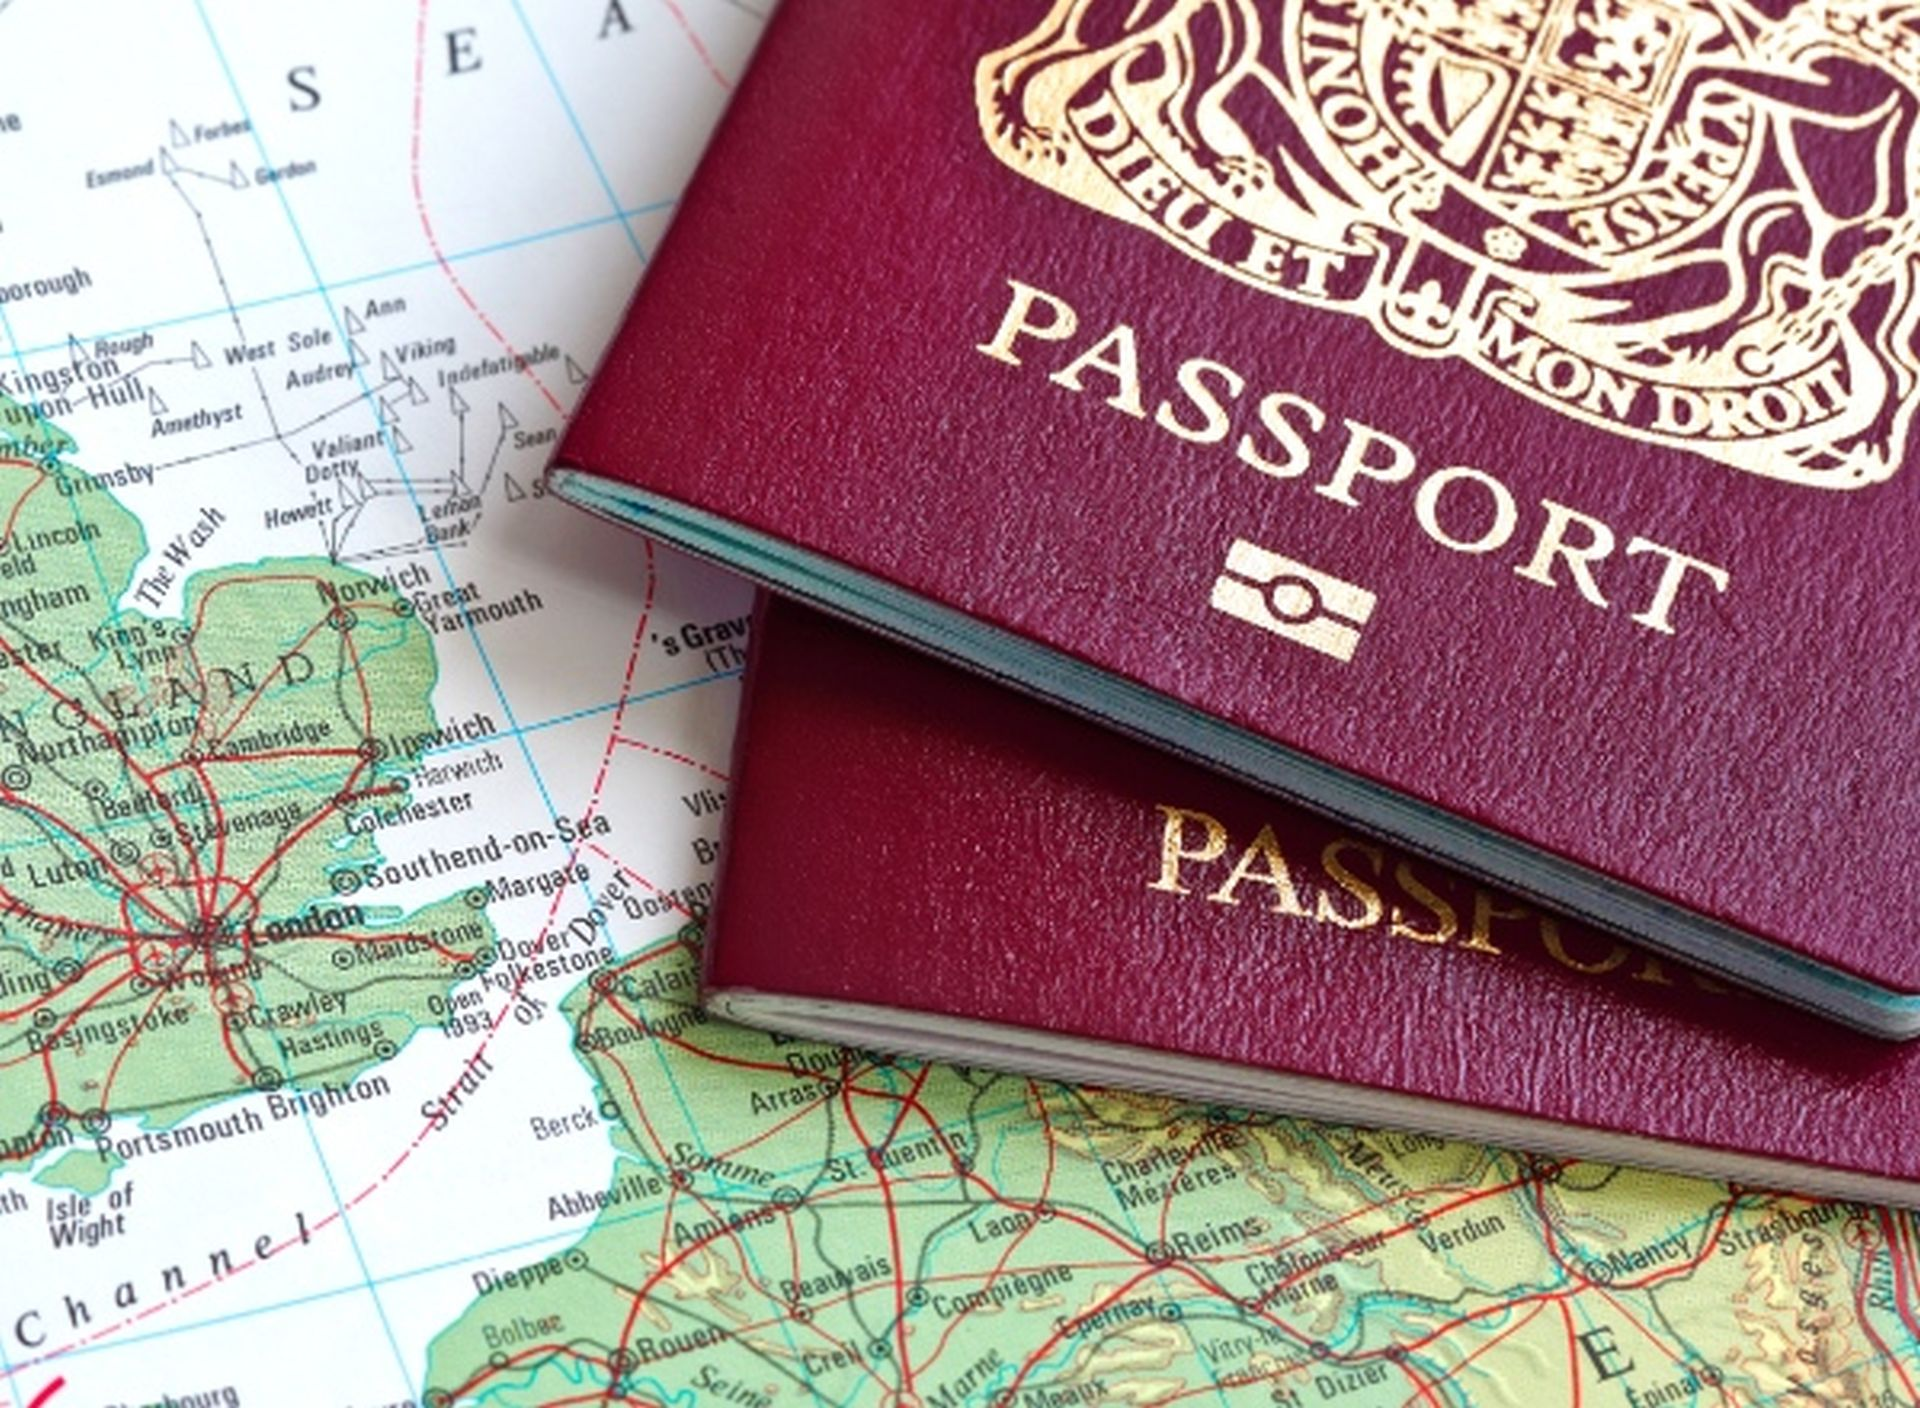 Netherlands work permit is required some  categories of work, while there is no need for permit for some other kinds of work